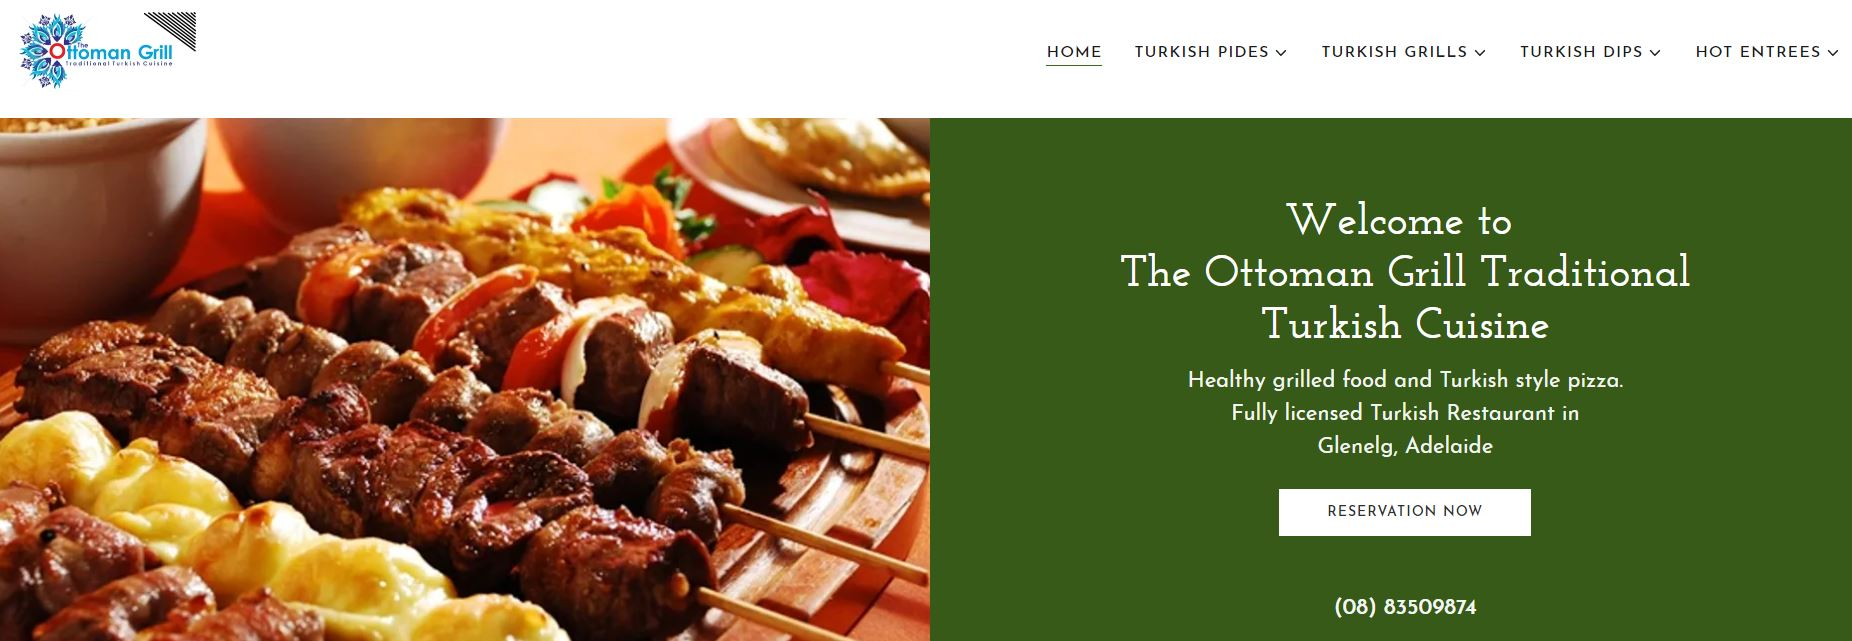 The Ottoman Grill Traditional Turkish Cuisine